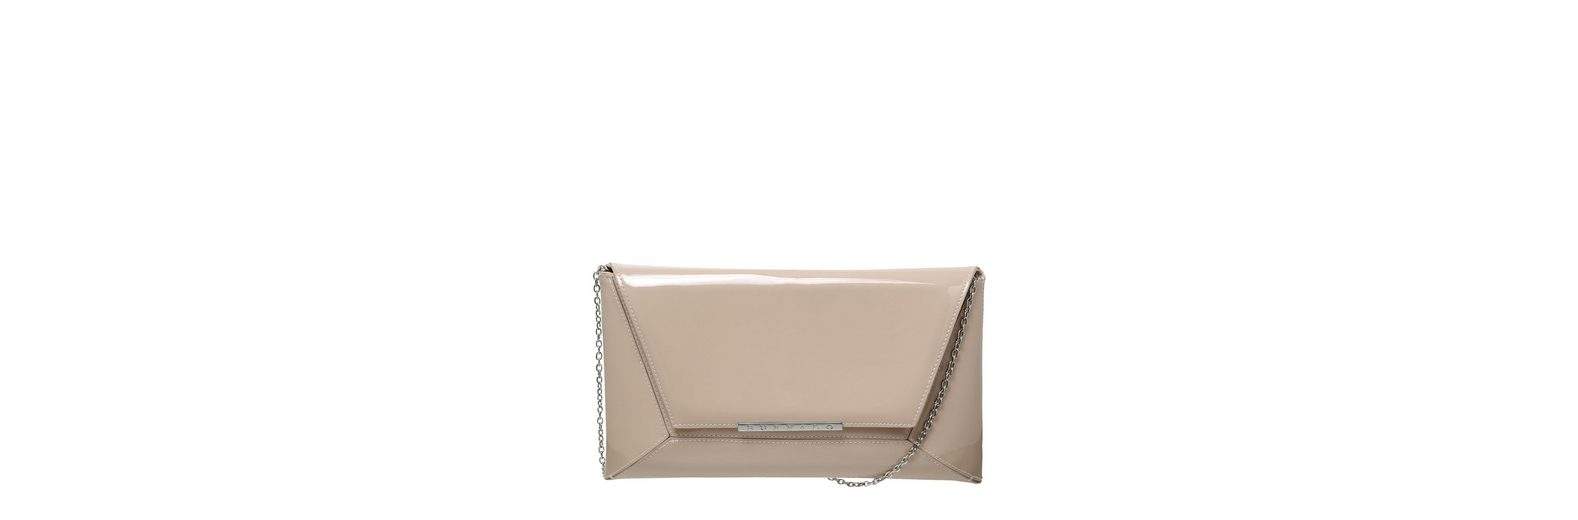 Buffalo Clutch, gl盲nzend